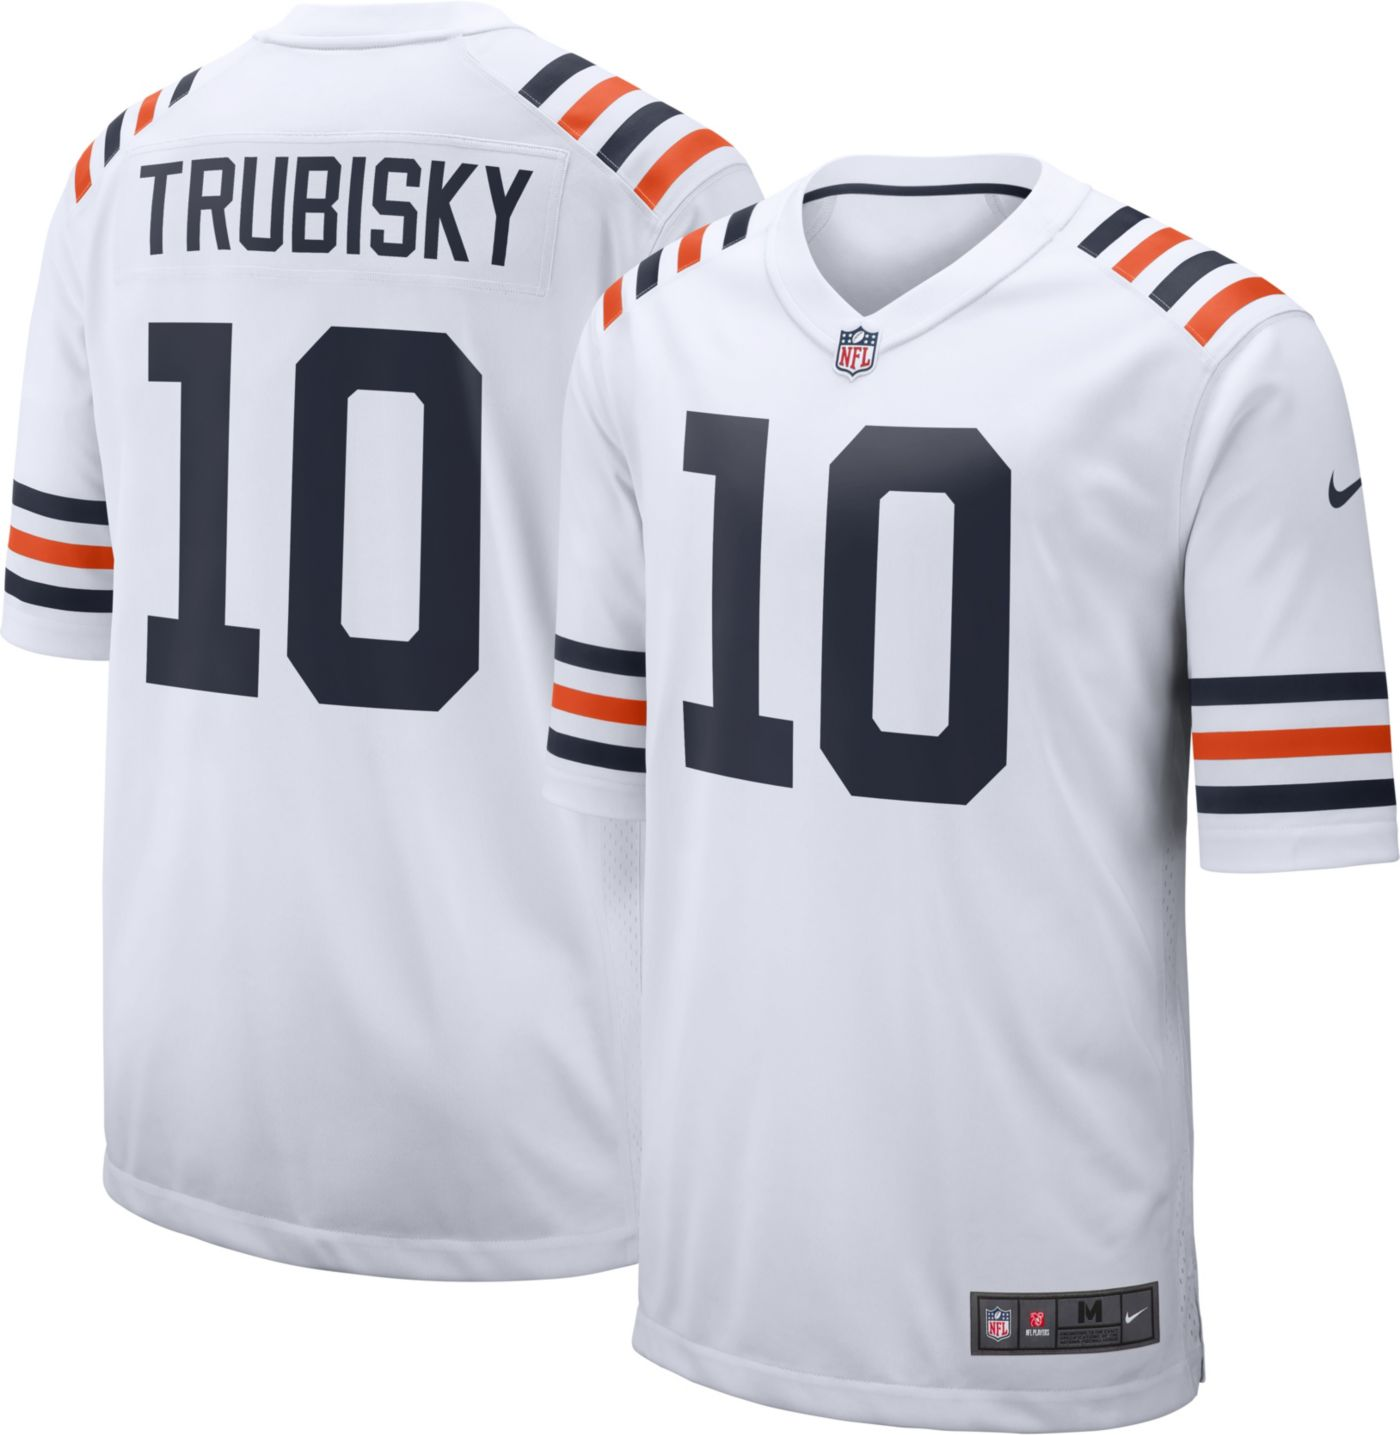 Nike Men's Alternate Game Jersey Chicago Bears Mitchell Trubisky #10